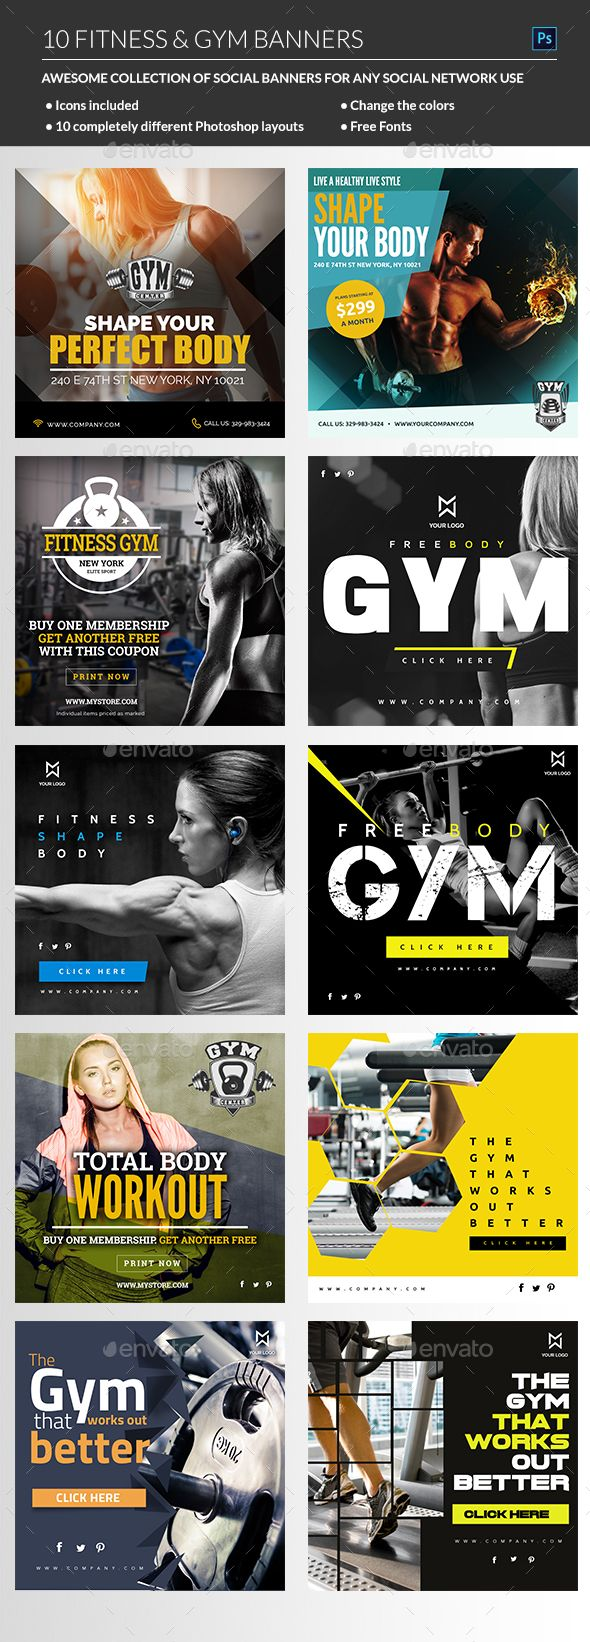 Fitness Web Banners Templates PSD. Download here: http://graphicriver.net/item/fitness-banners/16267380?ref=ksioks